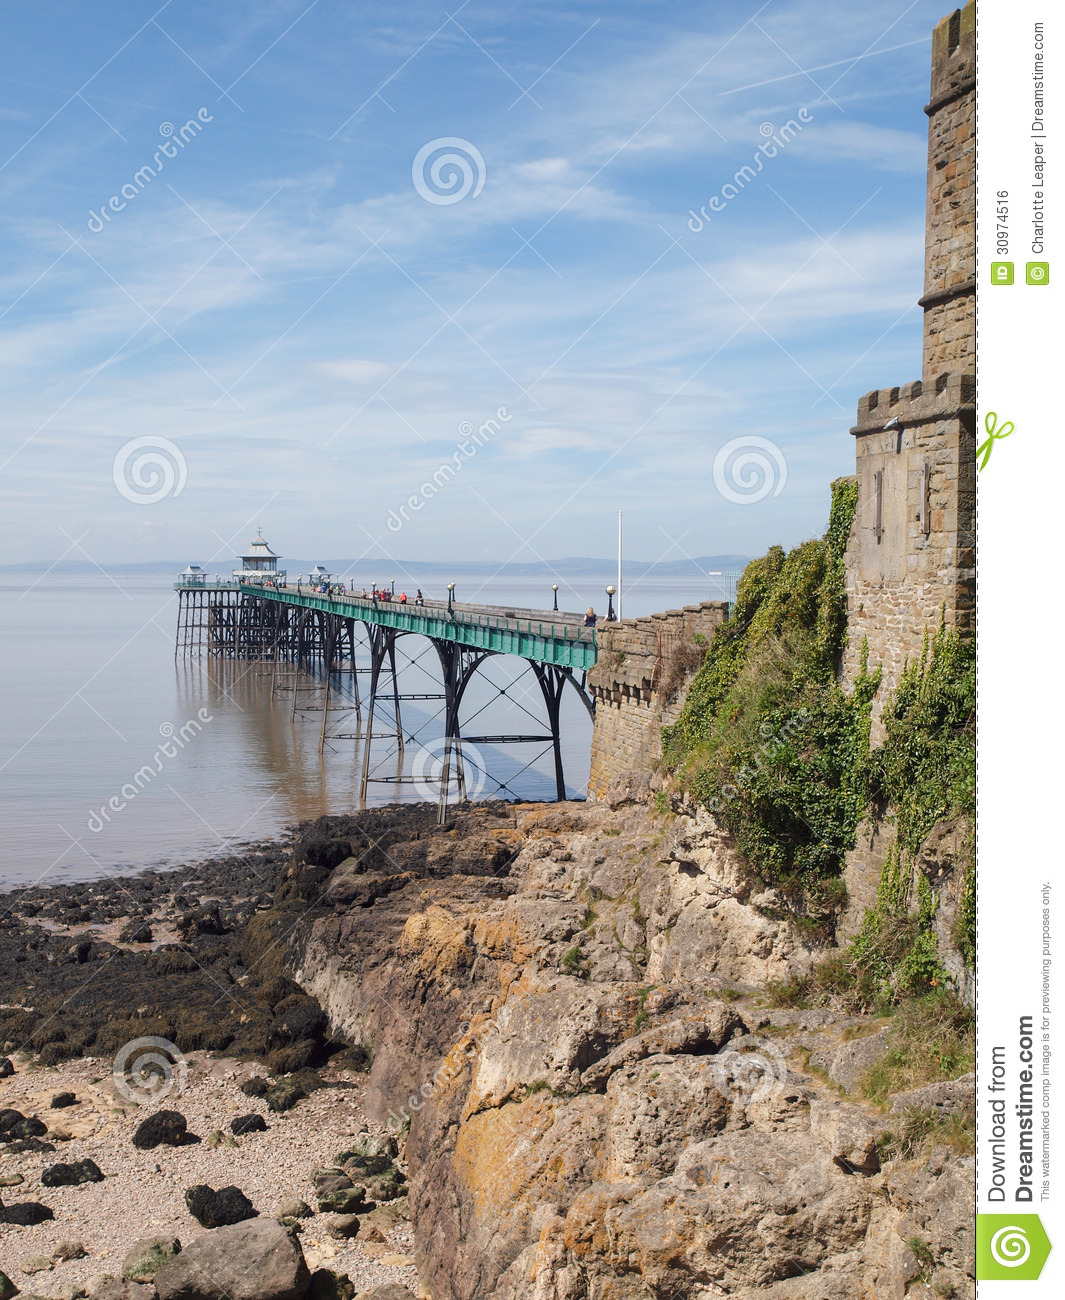 Royalty Free Stock Image Clevedon Pier Toll House Somerset England S Wall Leading Onto Beach North Blue Sky Summer Day Popular Tourist Image30974516 on Victorian House Plans